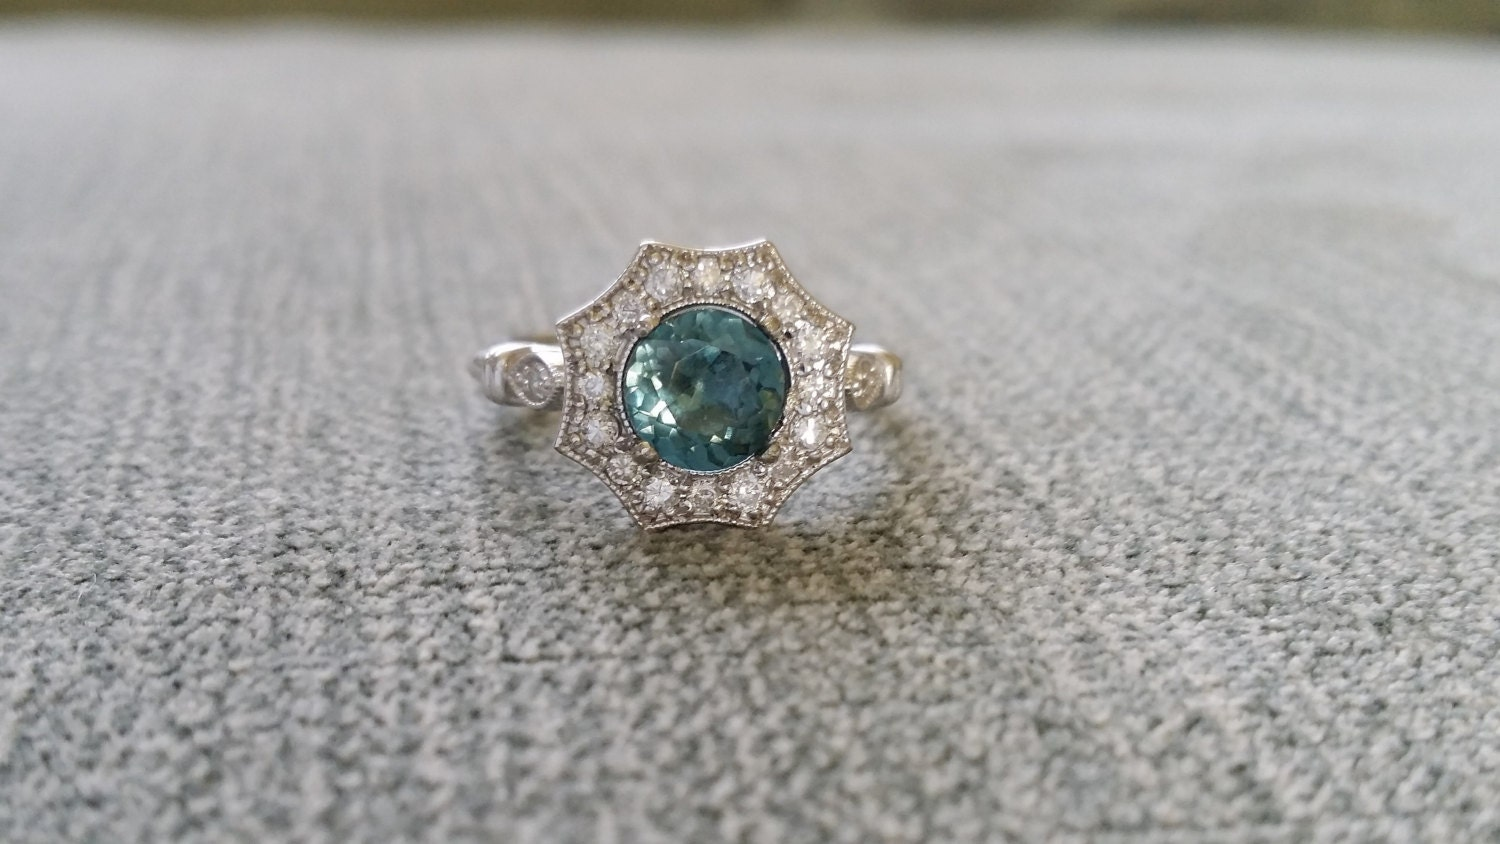 Halo Teal Spinel Diamond Ring Gemstone Engagement Ring Antique